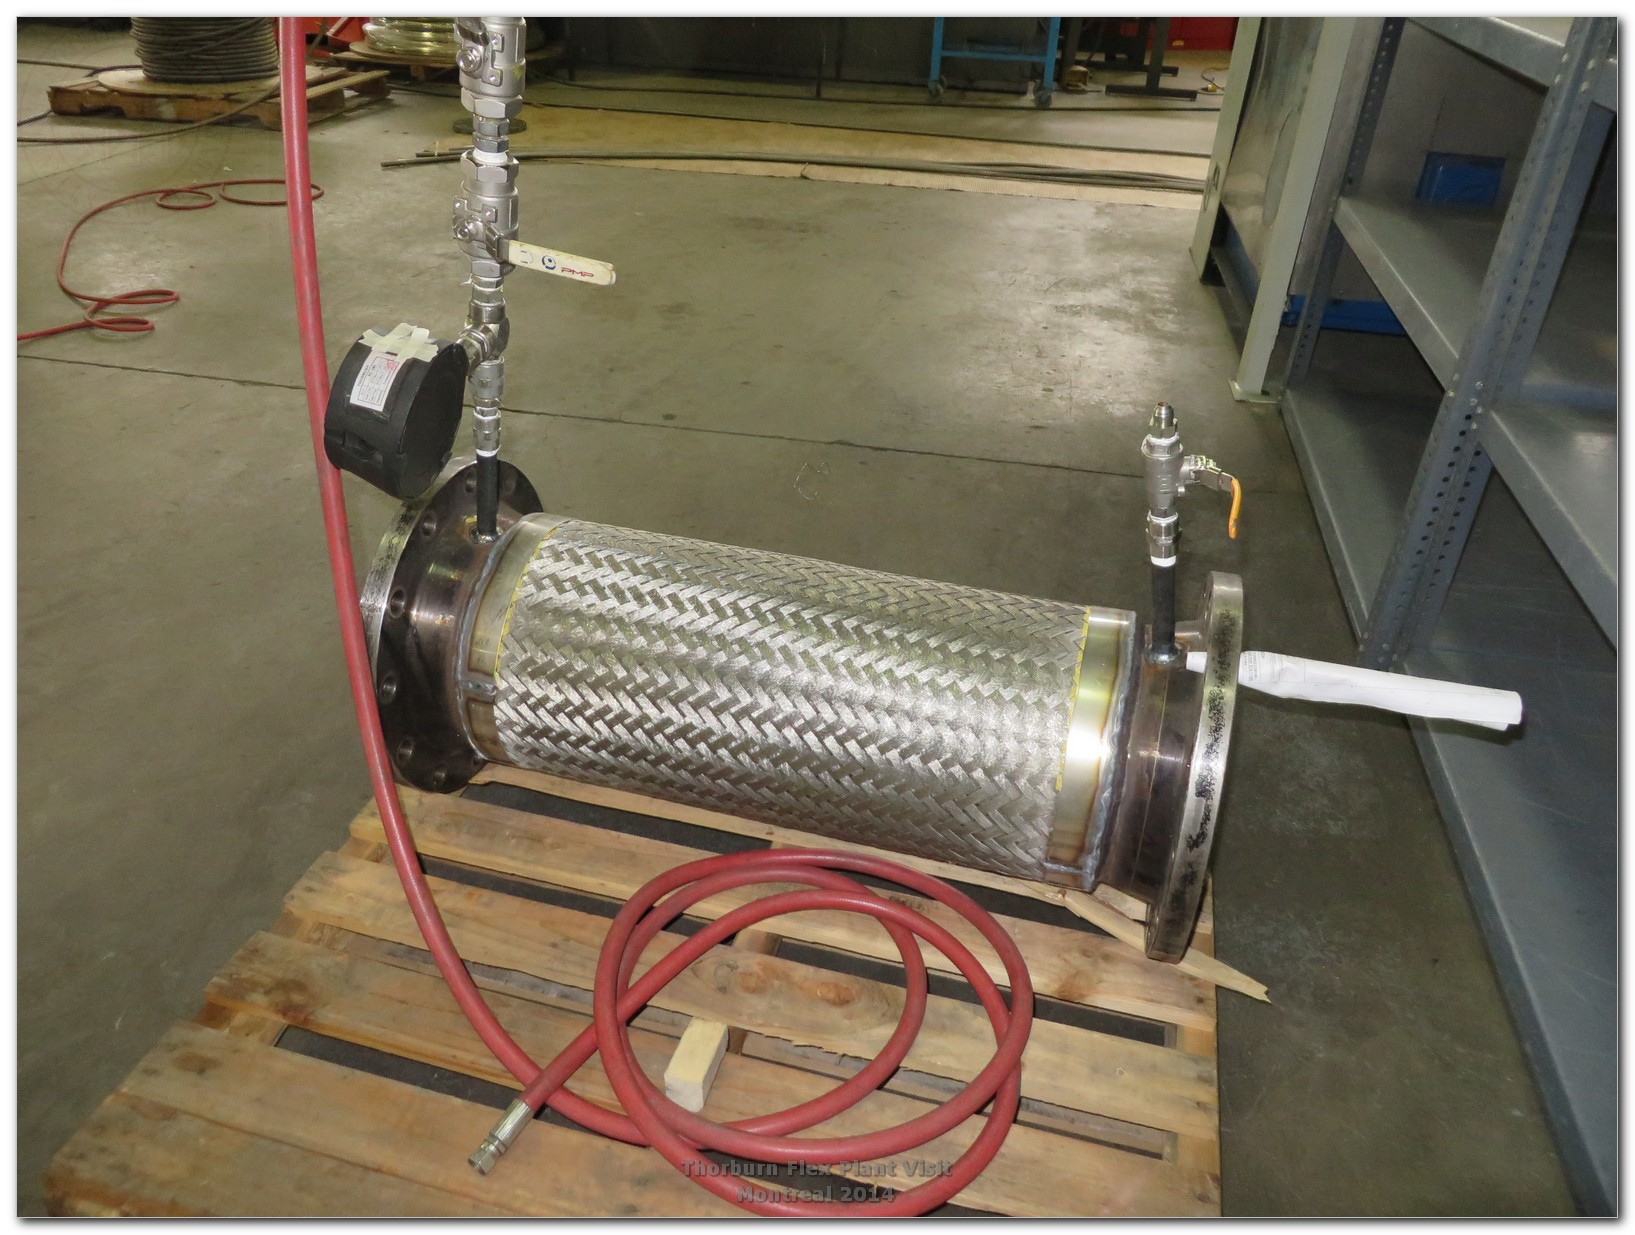 Metallic hose assembly ready for CRN qualification burst test